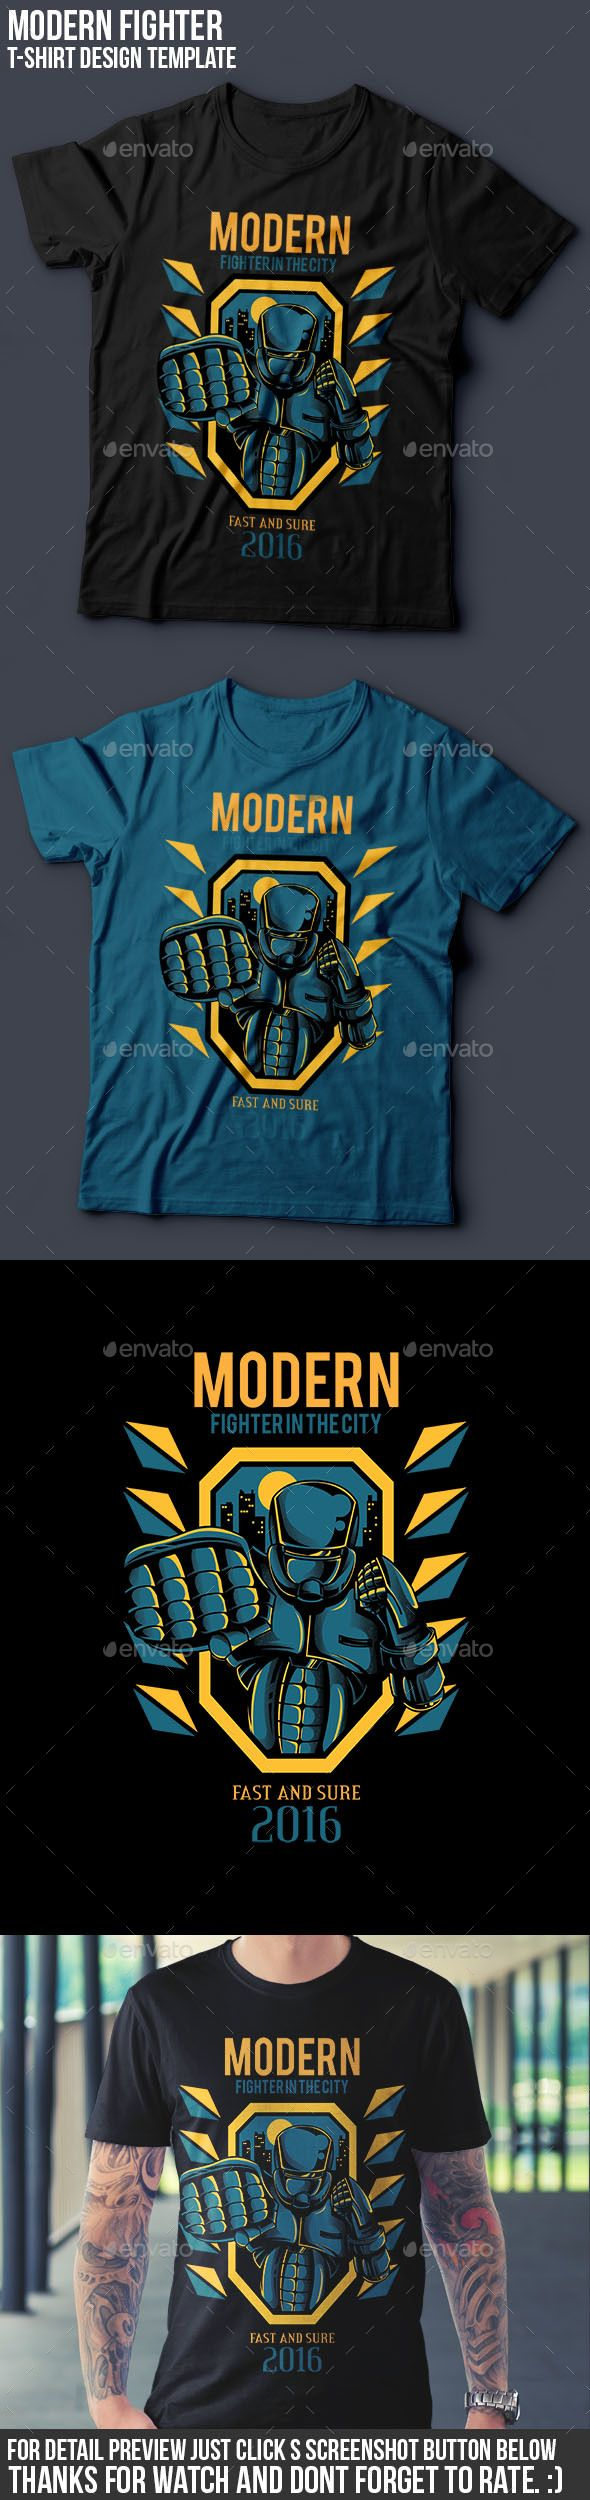 T shirt design quad cities - Modern Fighter T Shirt Design